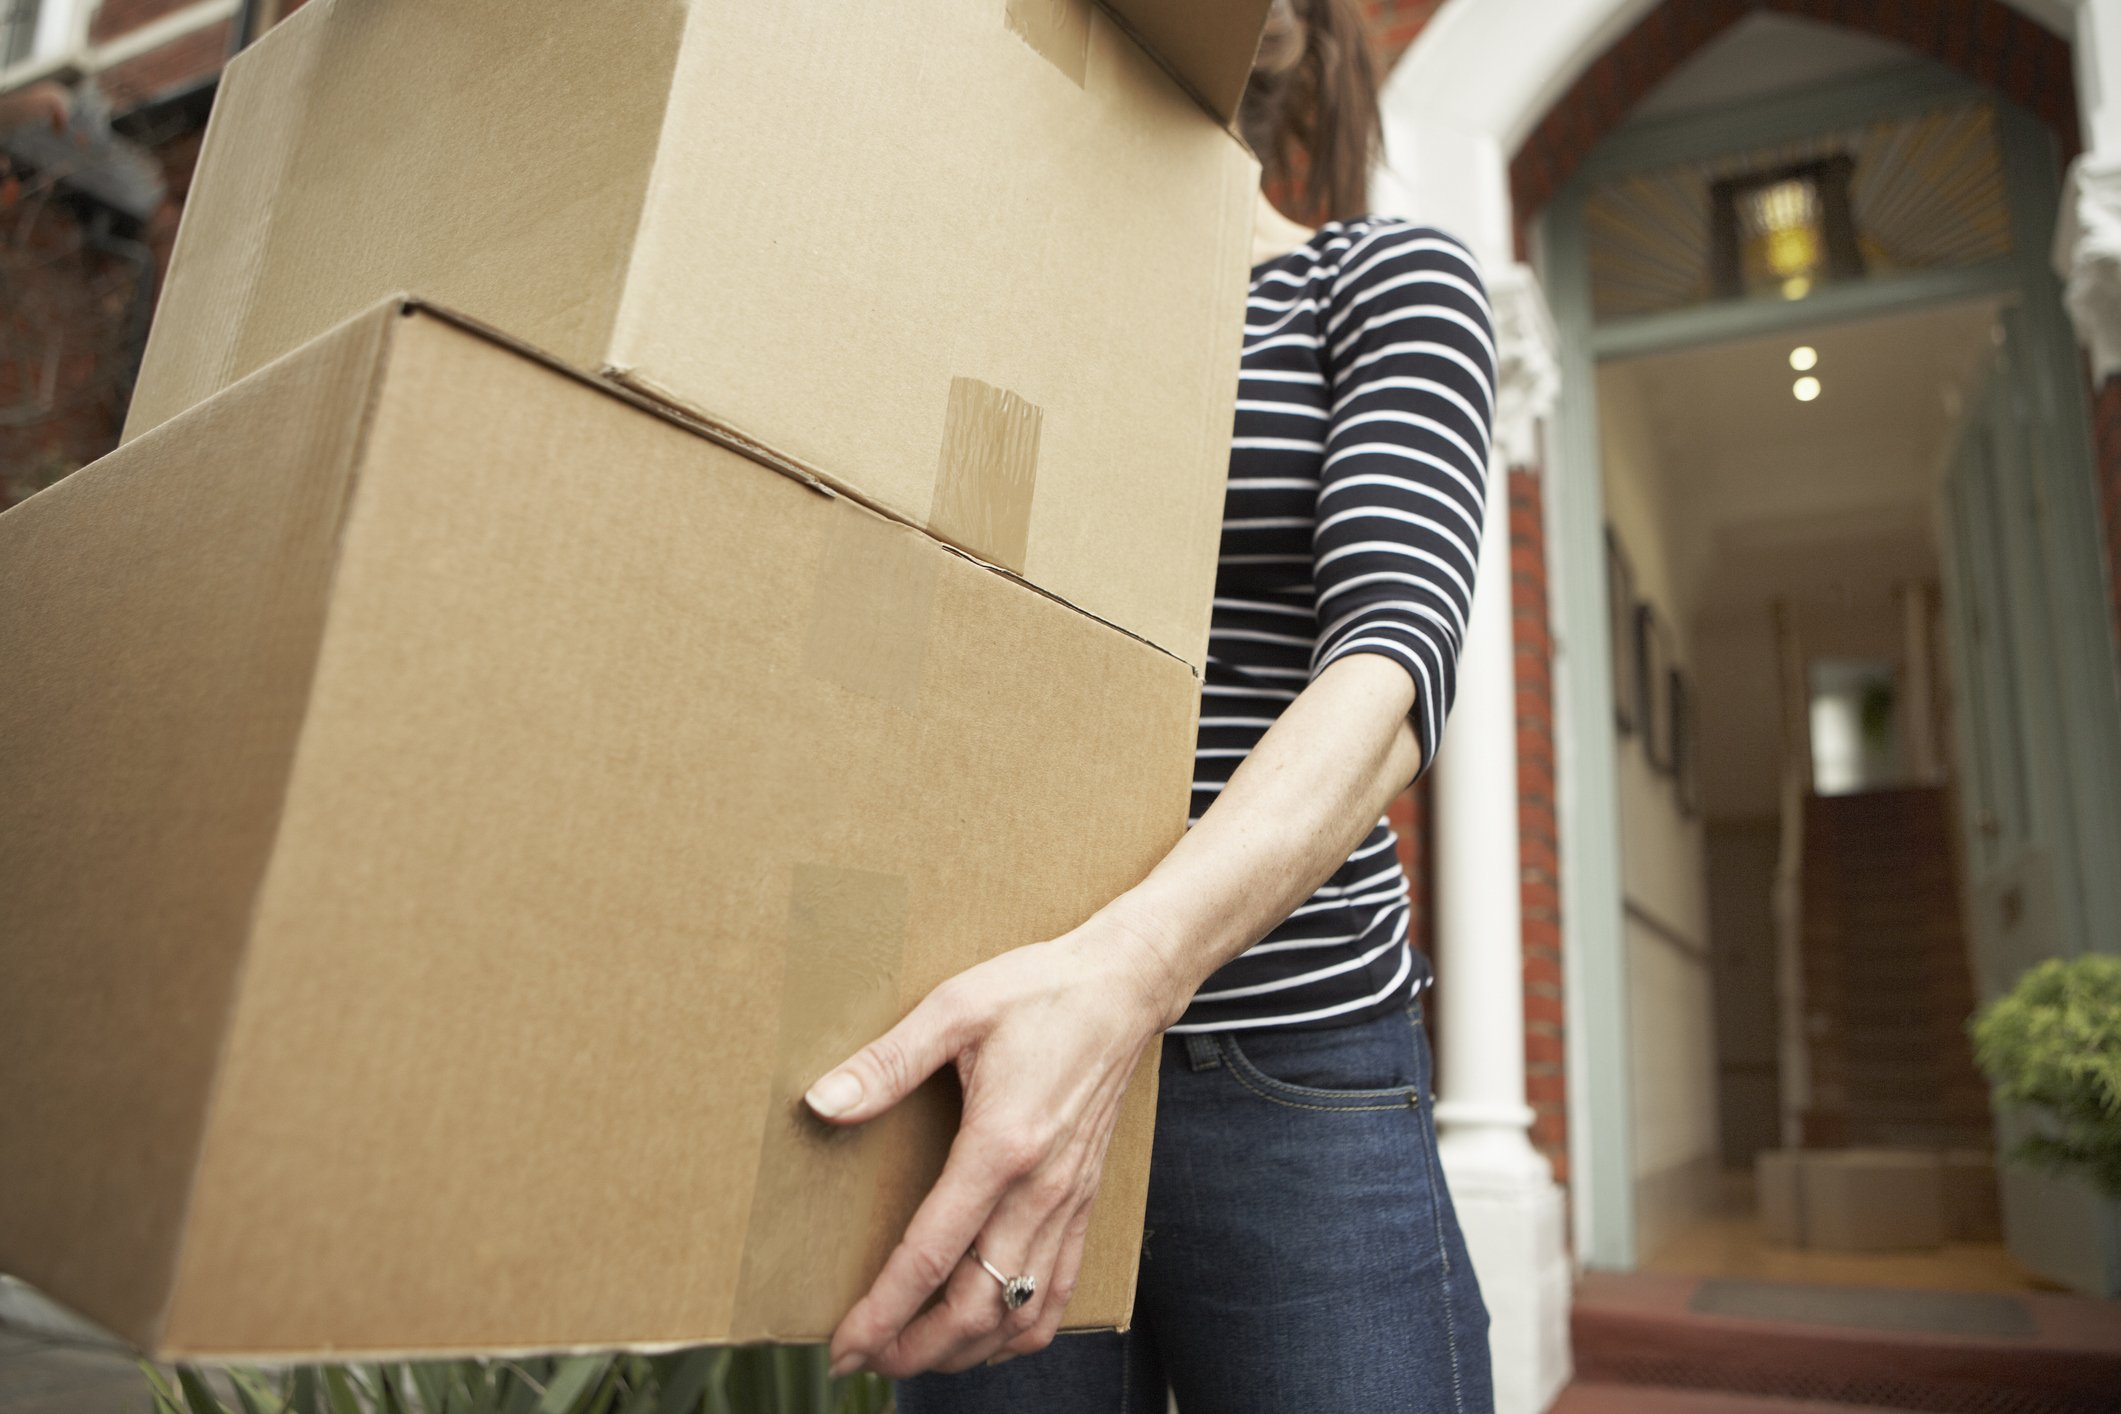 cause hemorrhoids | woman holding boxes